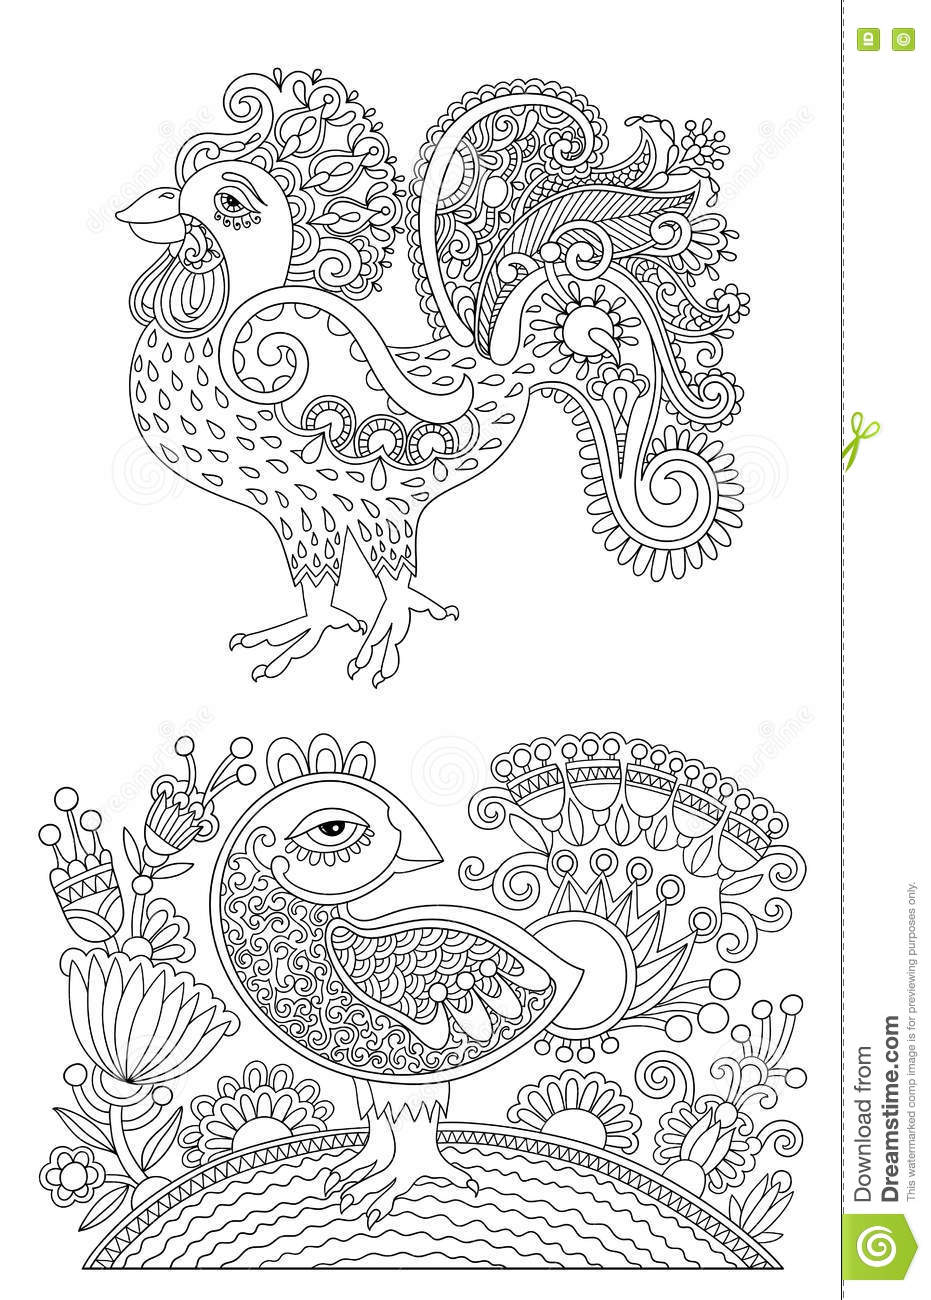 Line Art Joy : Original black and white line art rooster drawing page of